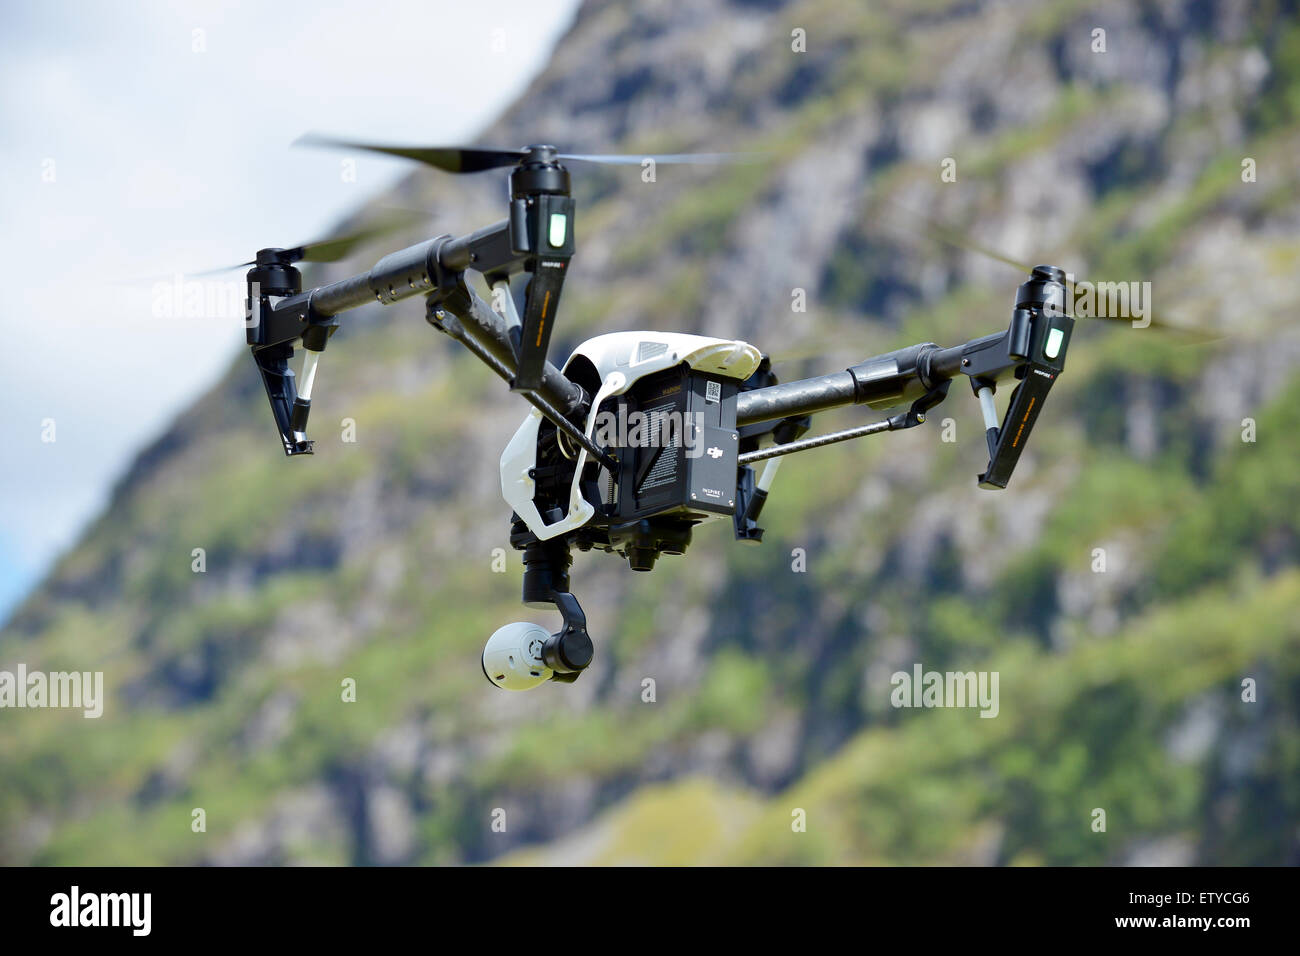 Drone with camera flying - Stock Image